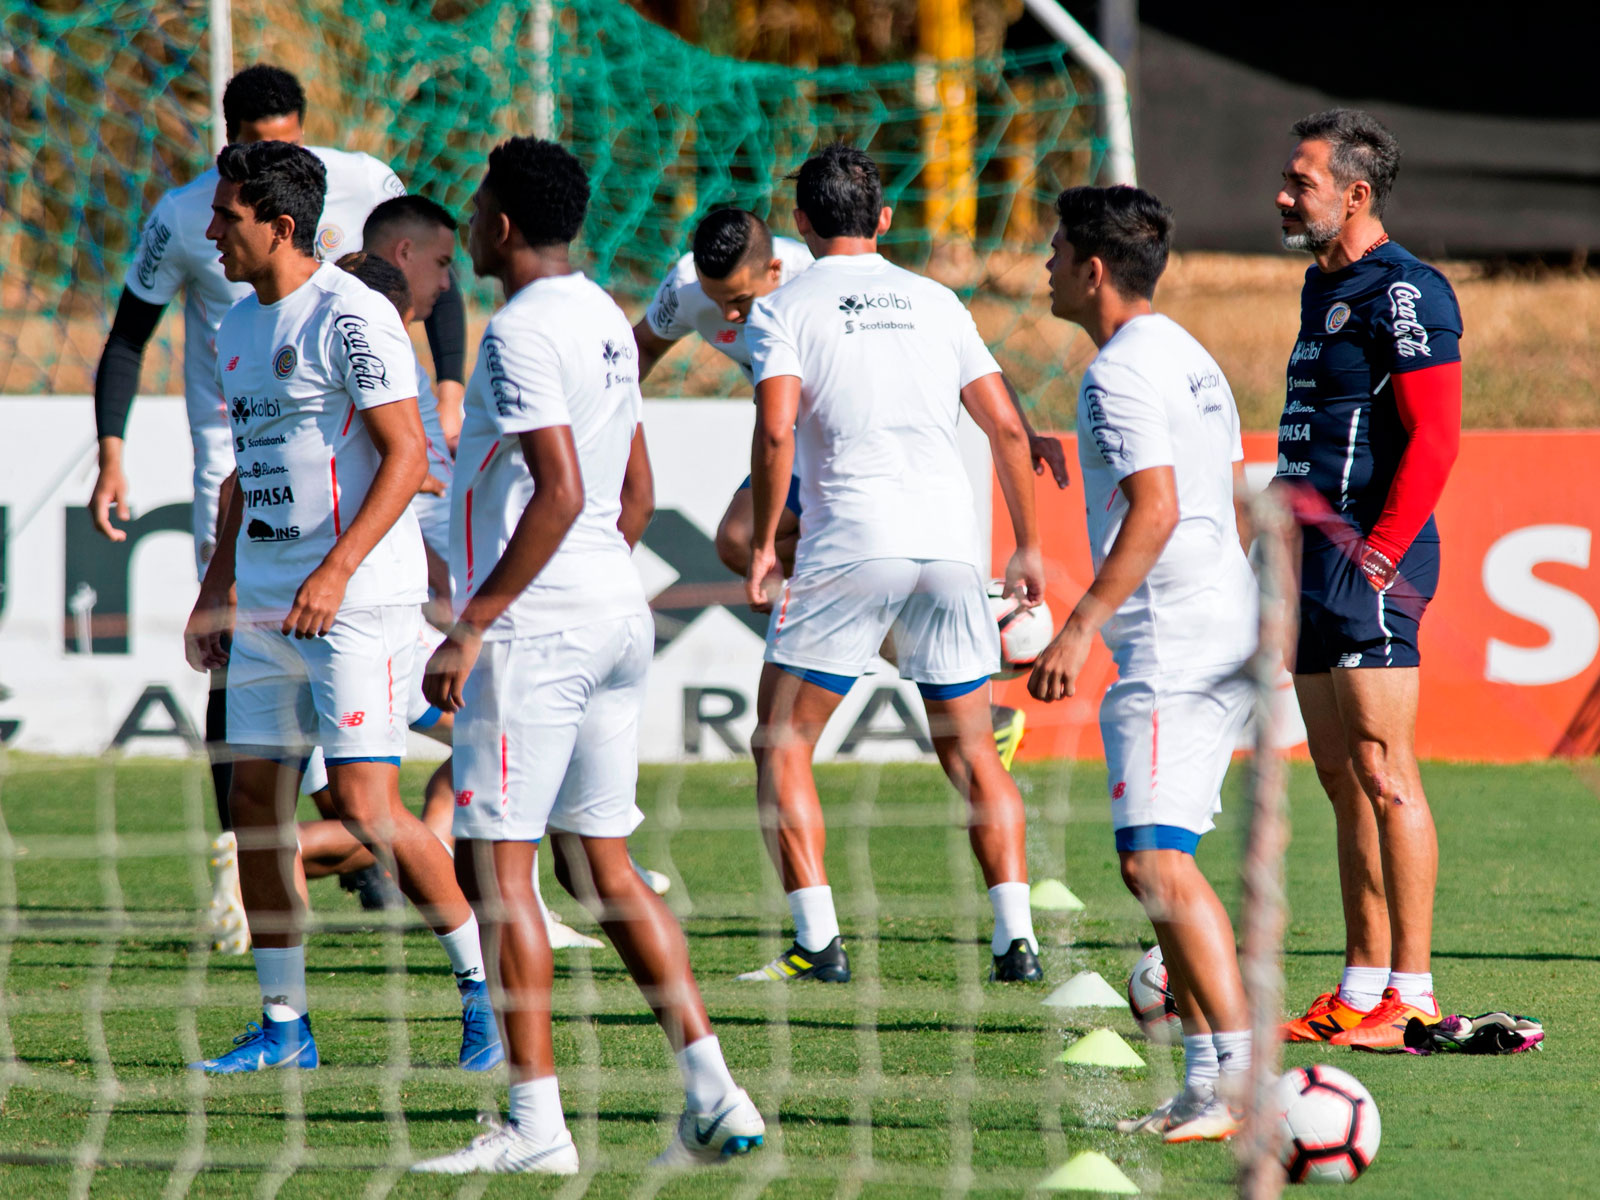 Costa Rica faces the USMNT in a friendly